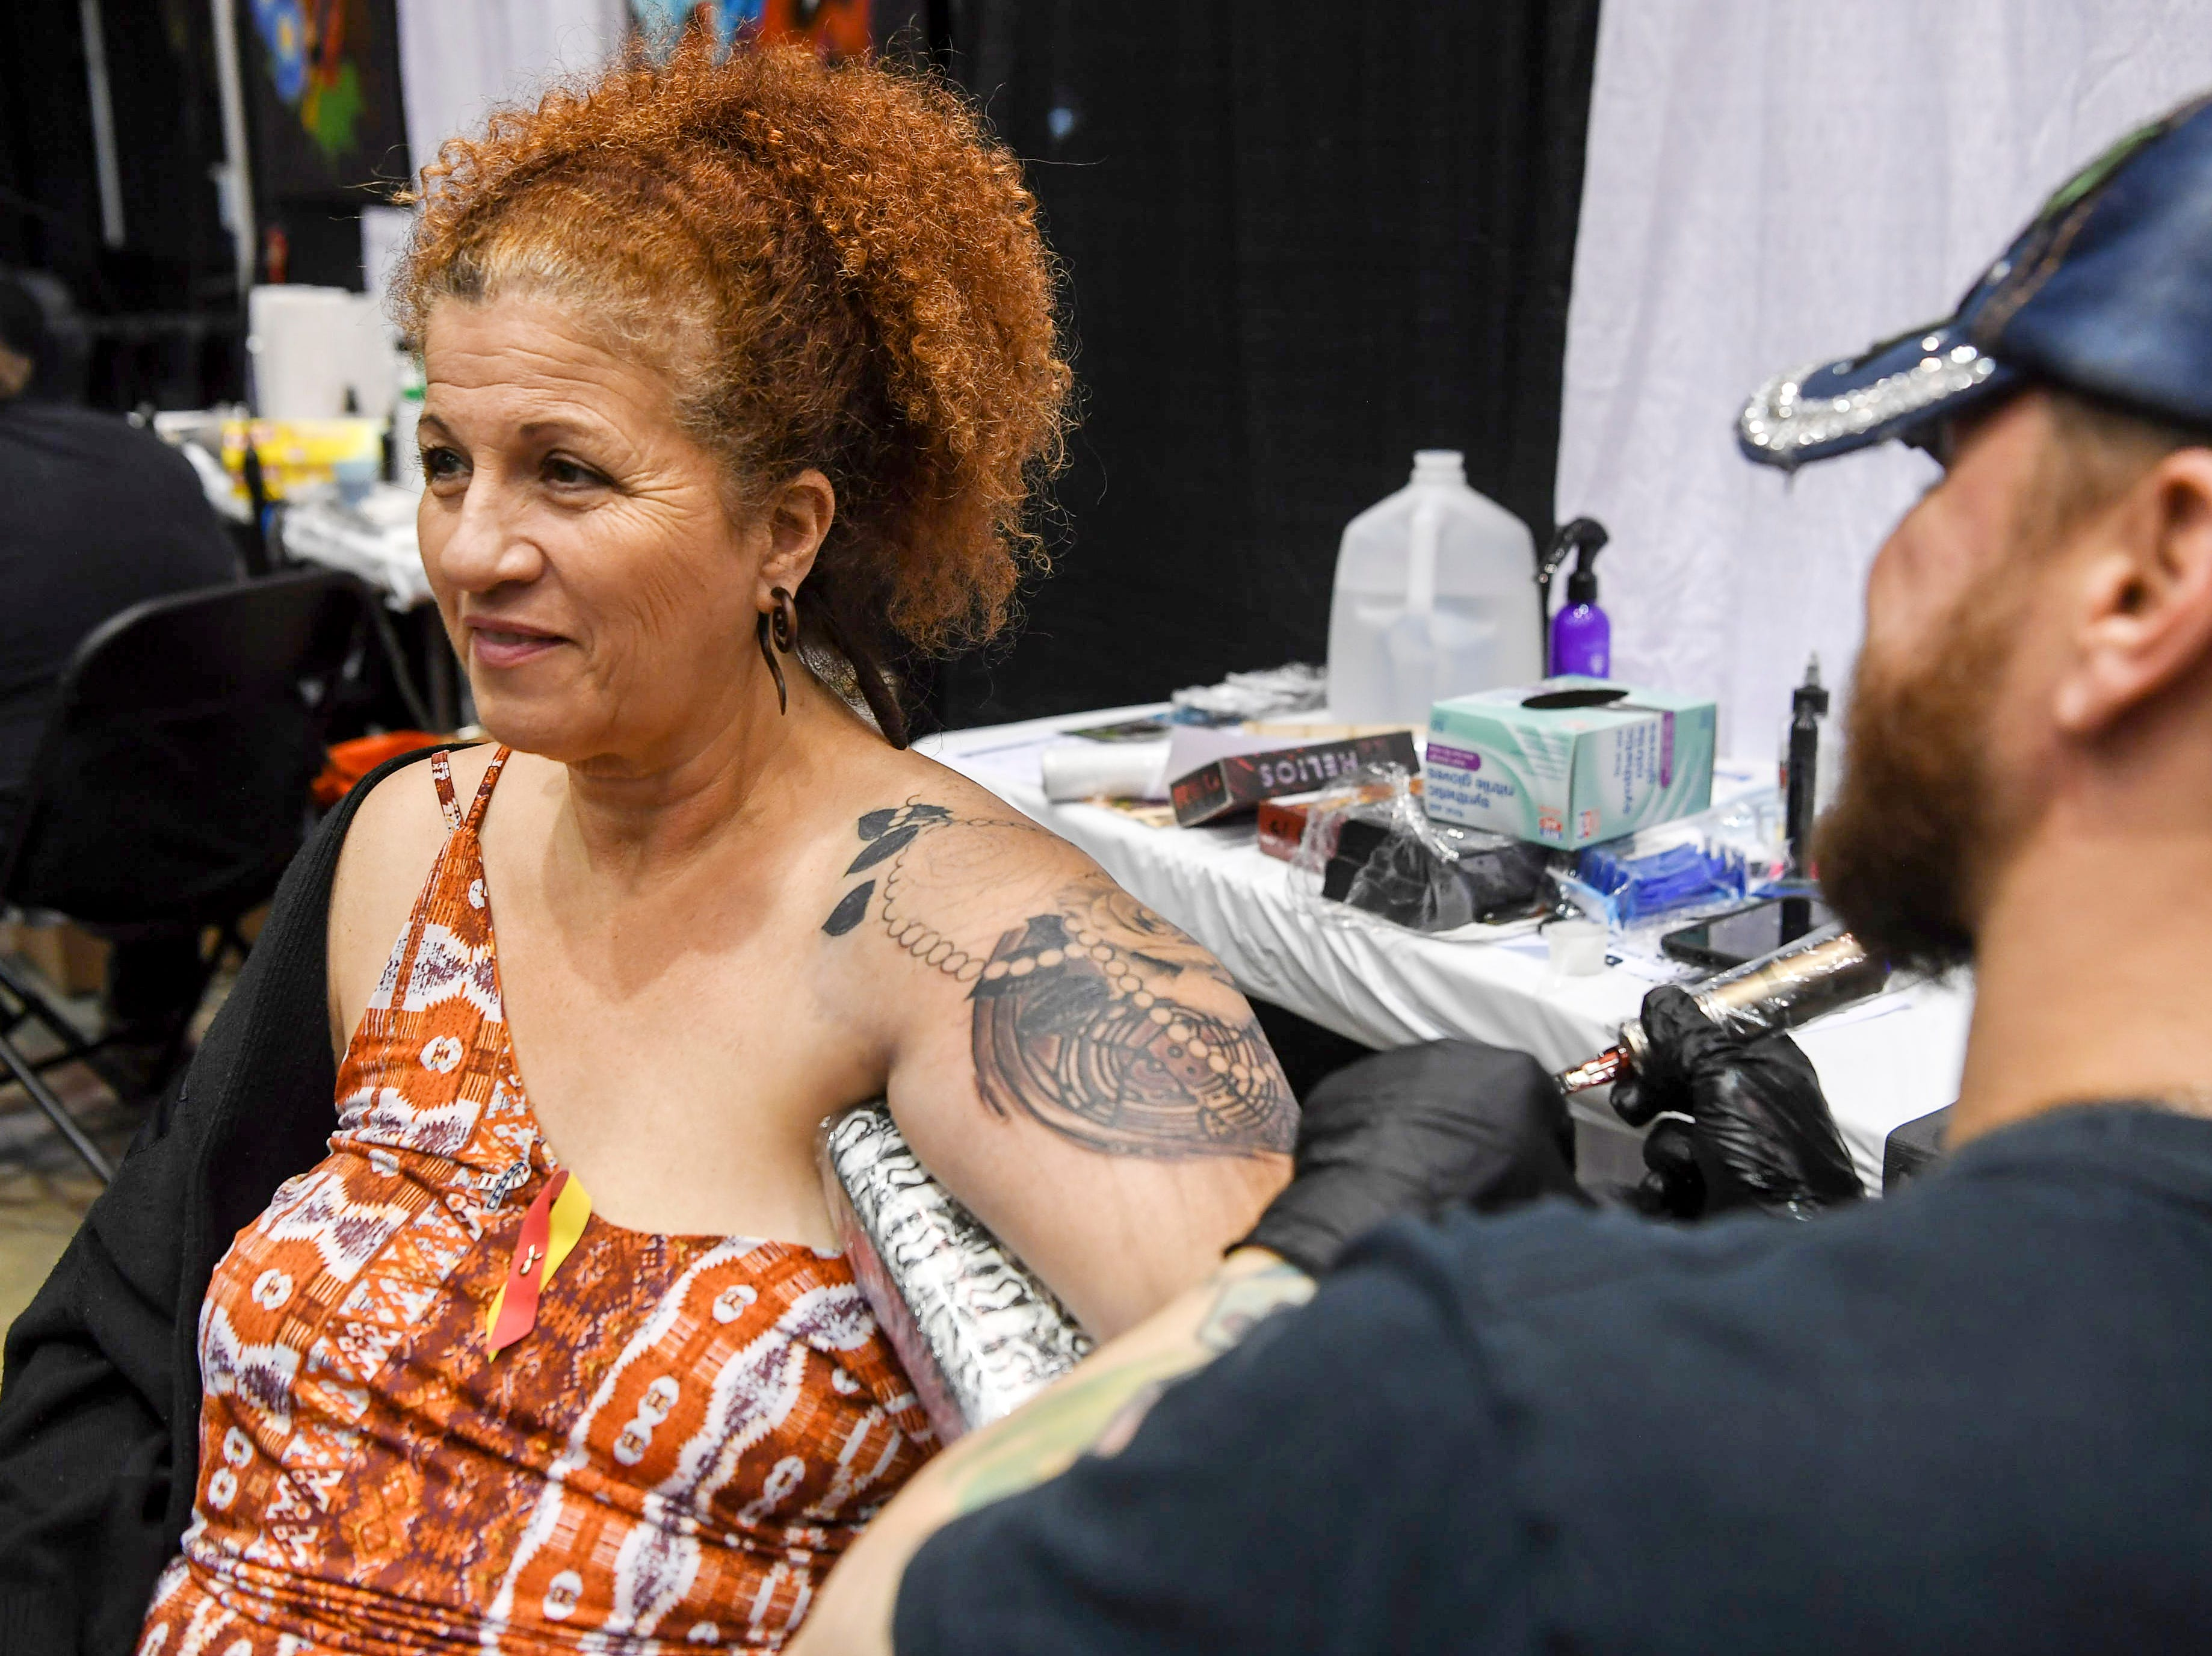 Vilma Williamson is tattoed by Dale Callahan of Hunter Gatherer Tattoo in Philadelphia during the Asheville Tattoo Convention April 28, 2019. Williamson traveled from Georgia to attend the convention.